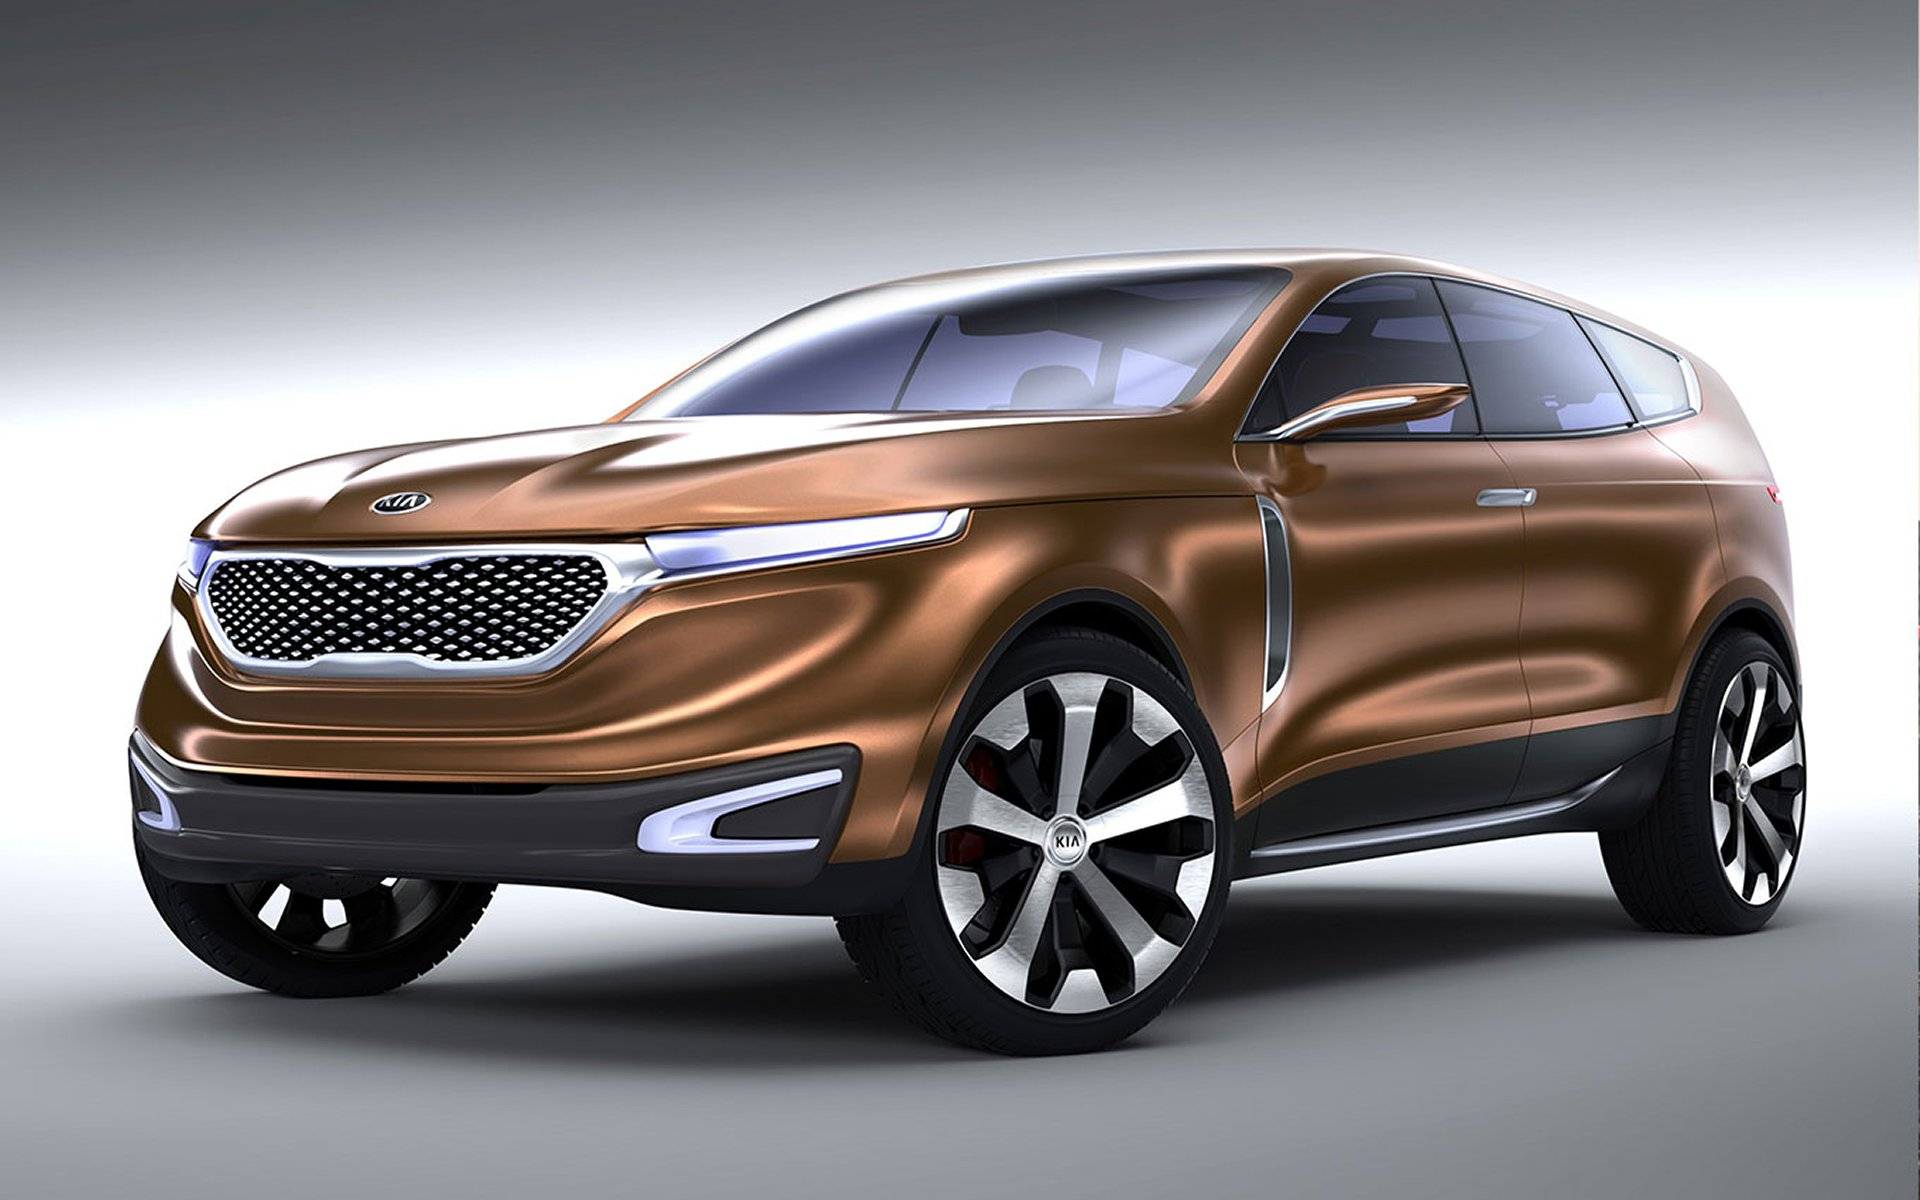 Cuv Car The Kia Cross Gt Concept The Cuv Of The Future